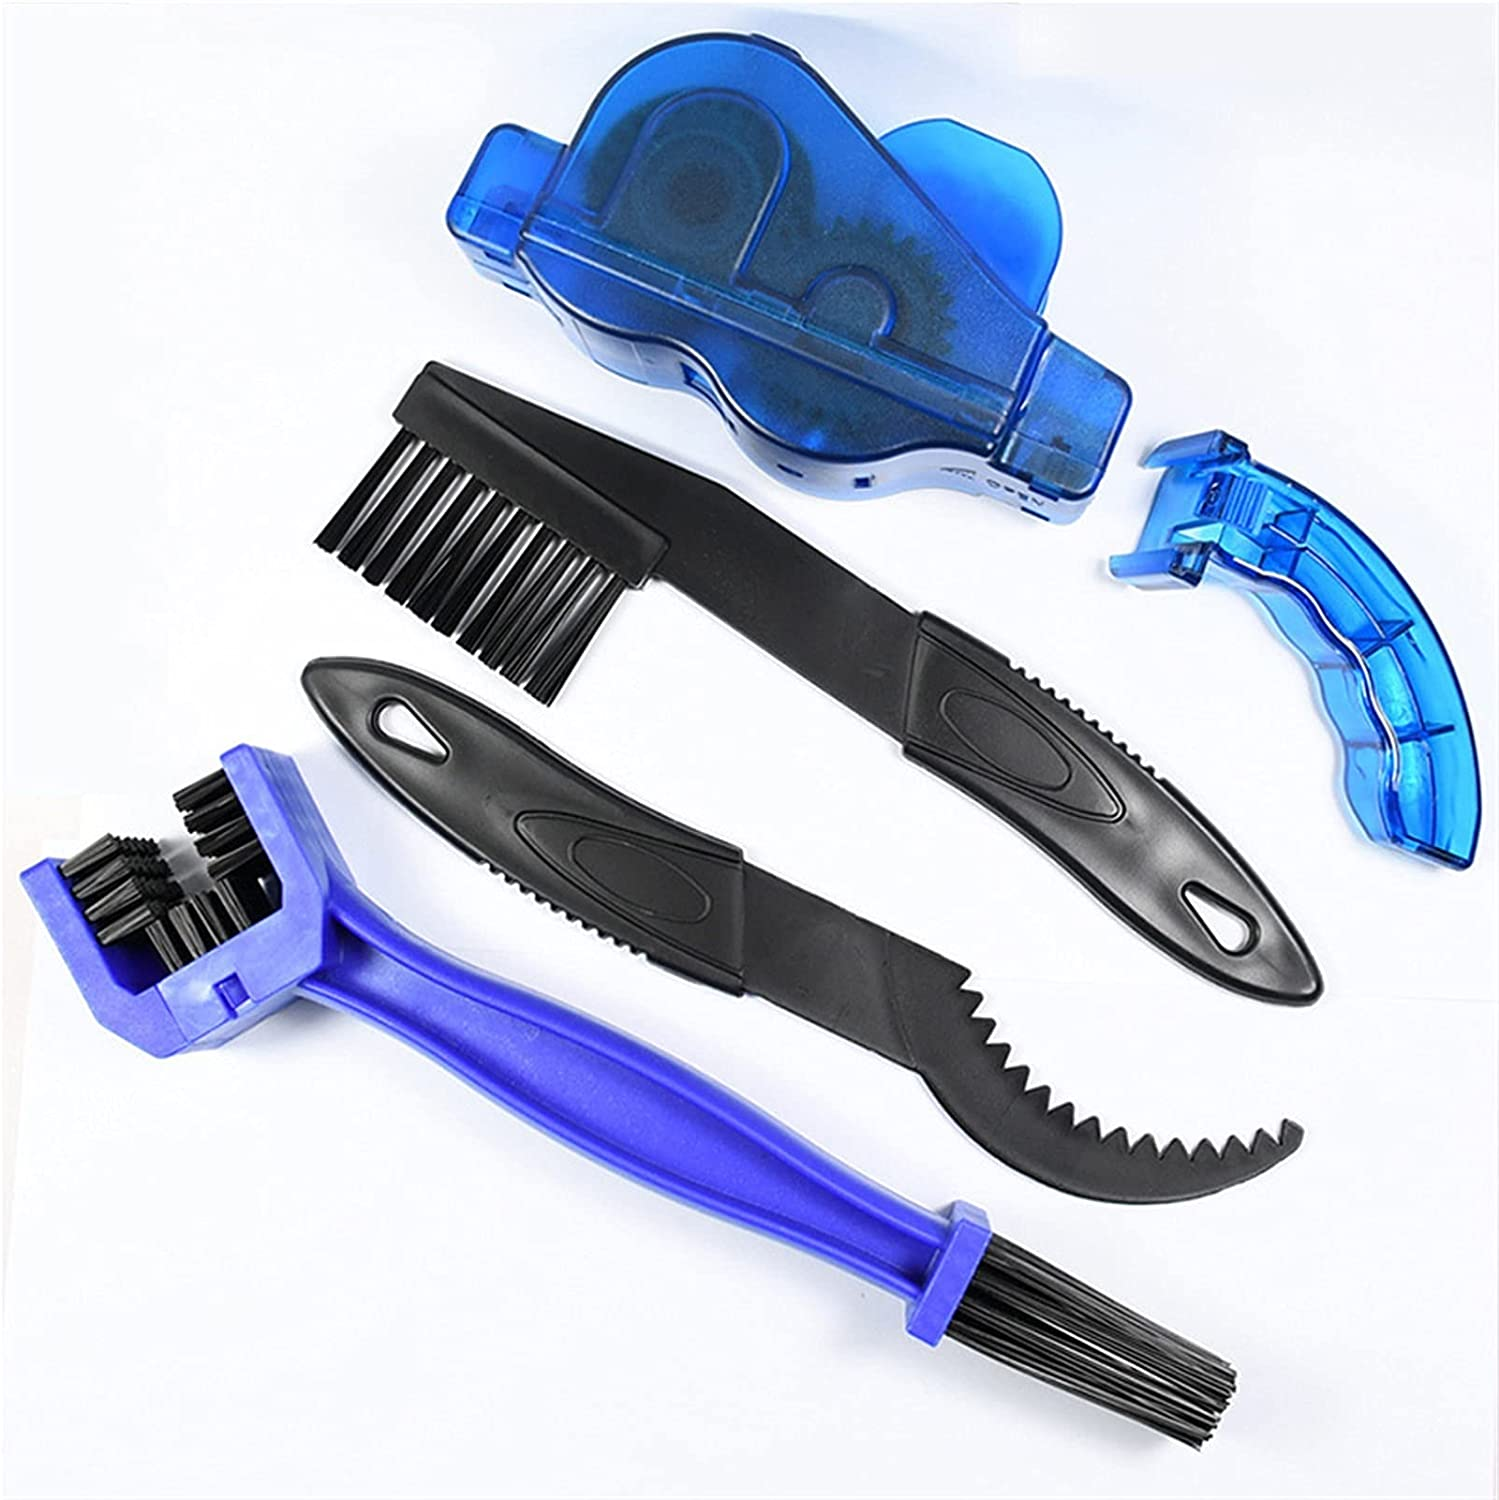 Bicycle Chain Cleaner Bike Cleaning Long-awaited Kit Washing New product Tool Ch